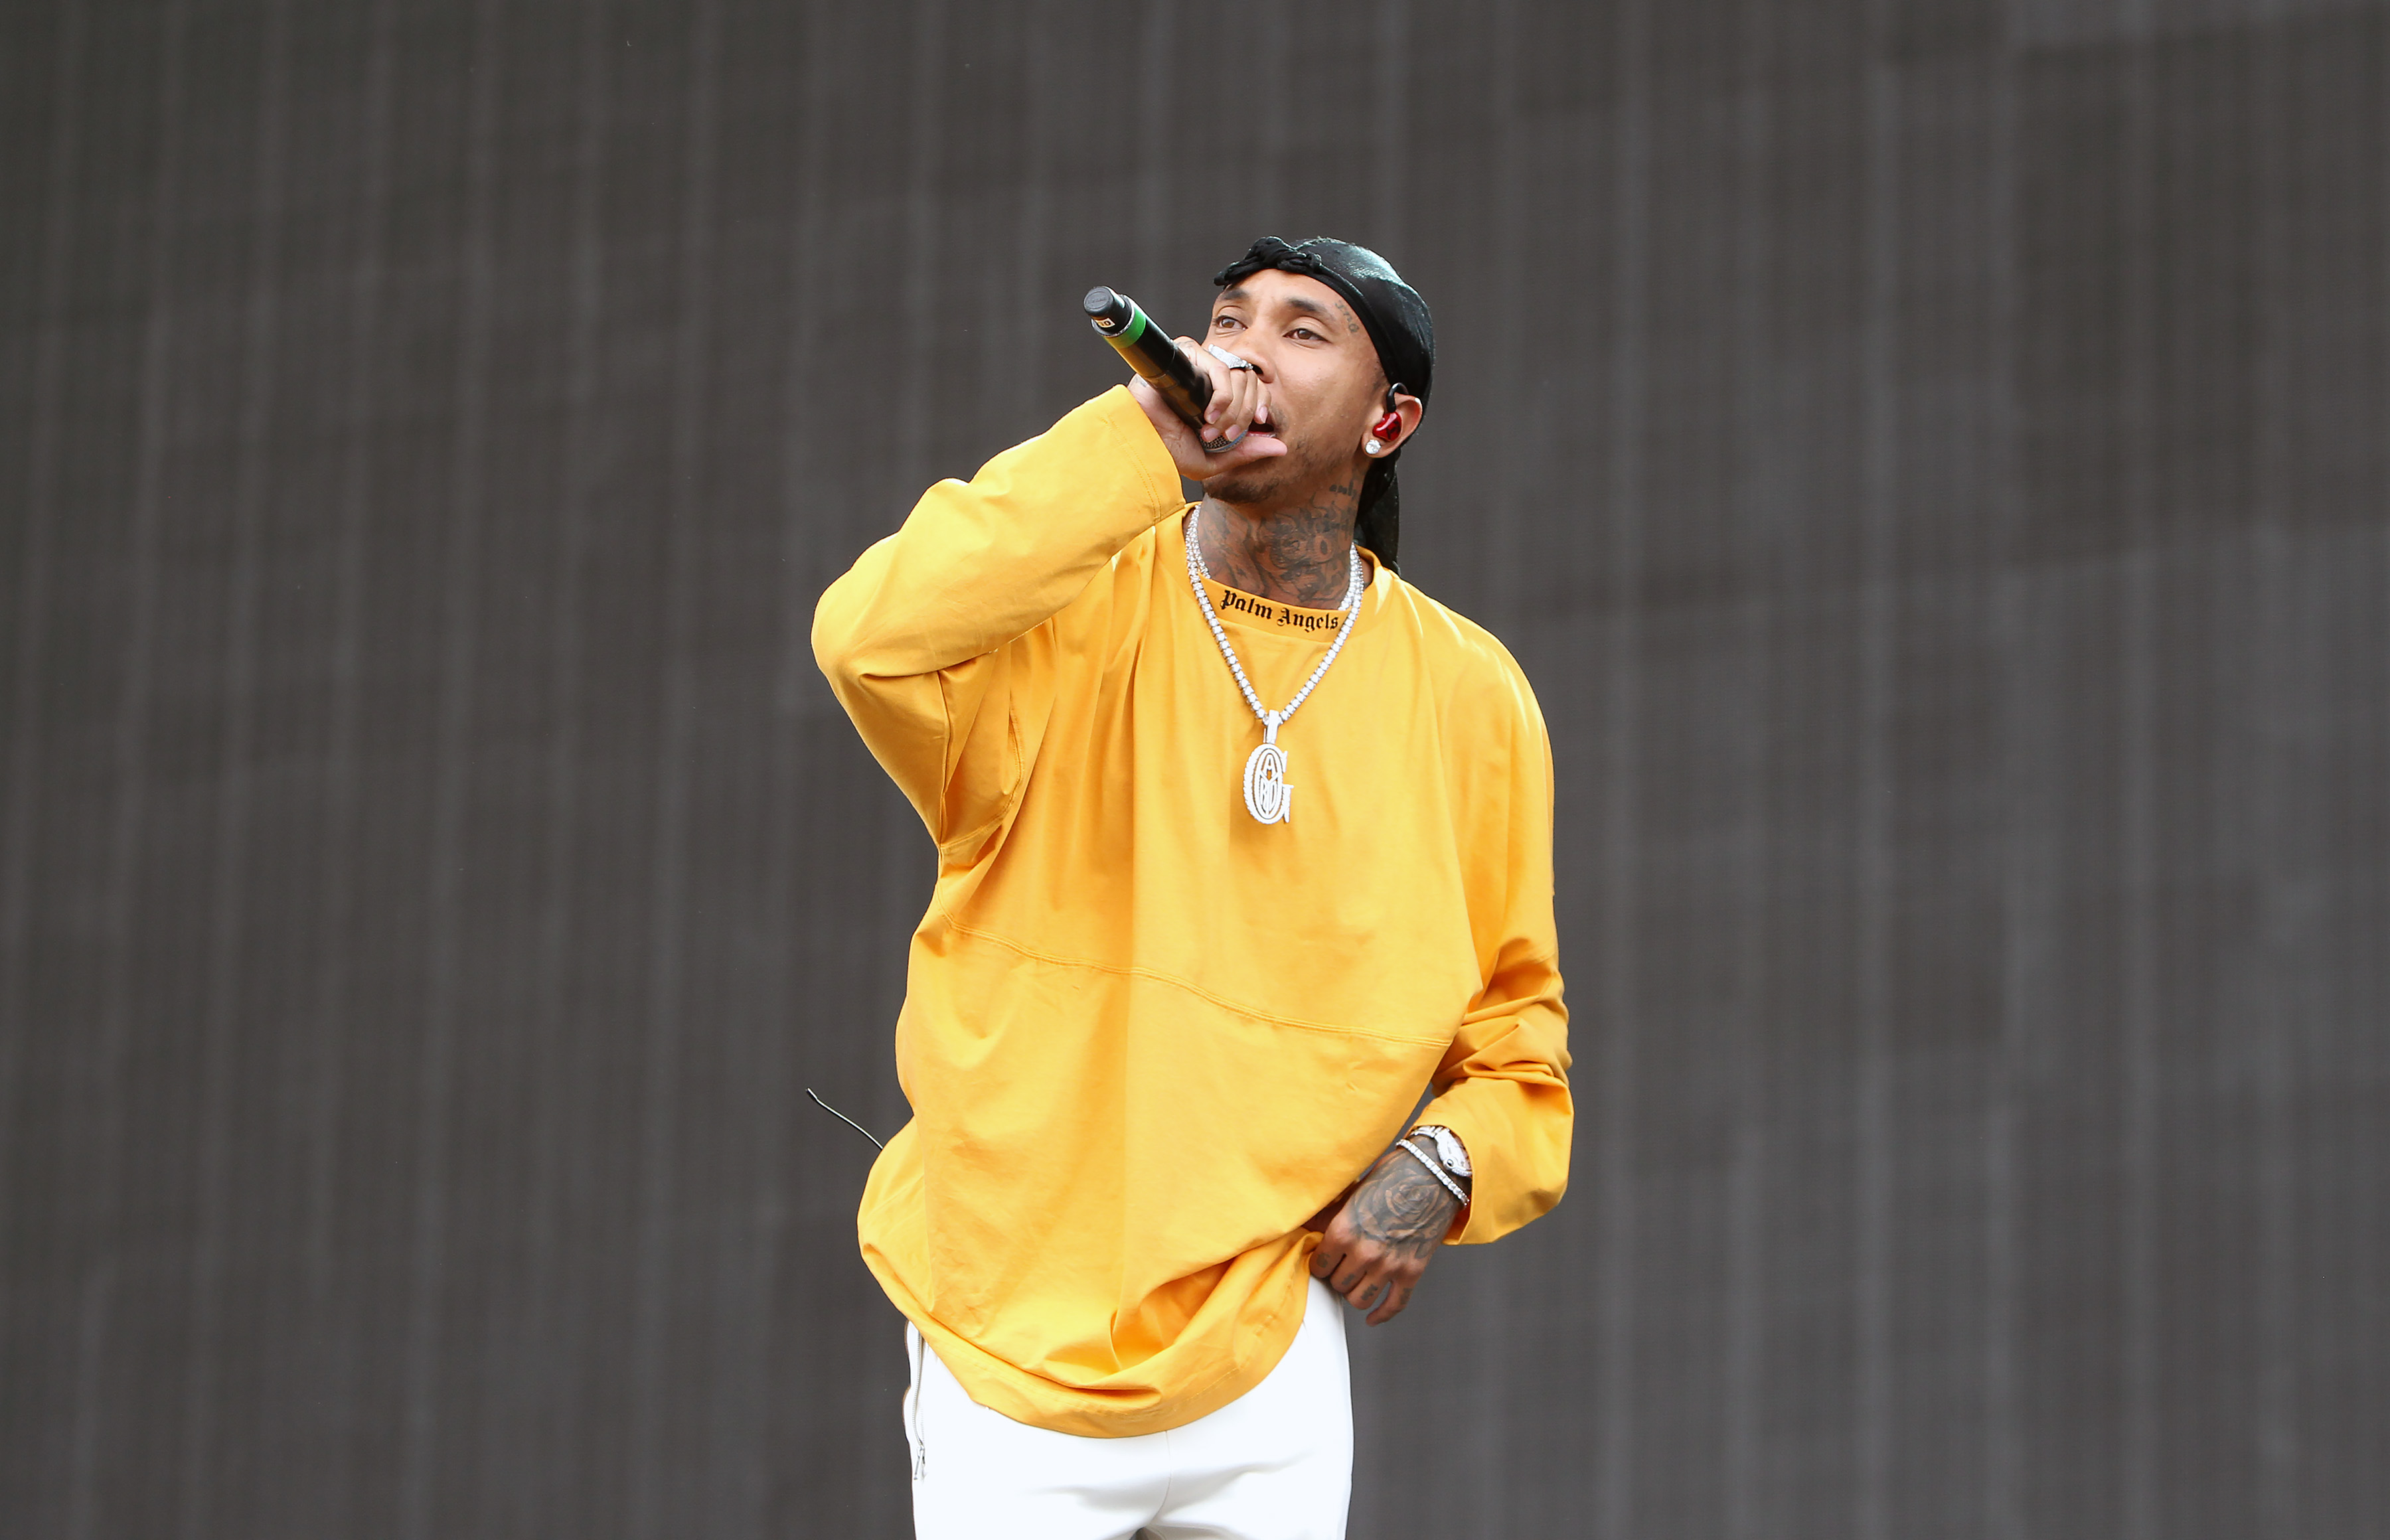 Day Three of Wireless Festival including Pusha T, Tyga, Yuna and Tory Lanez